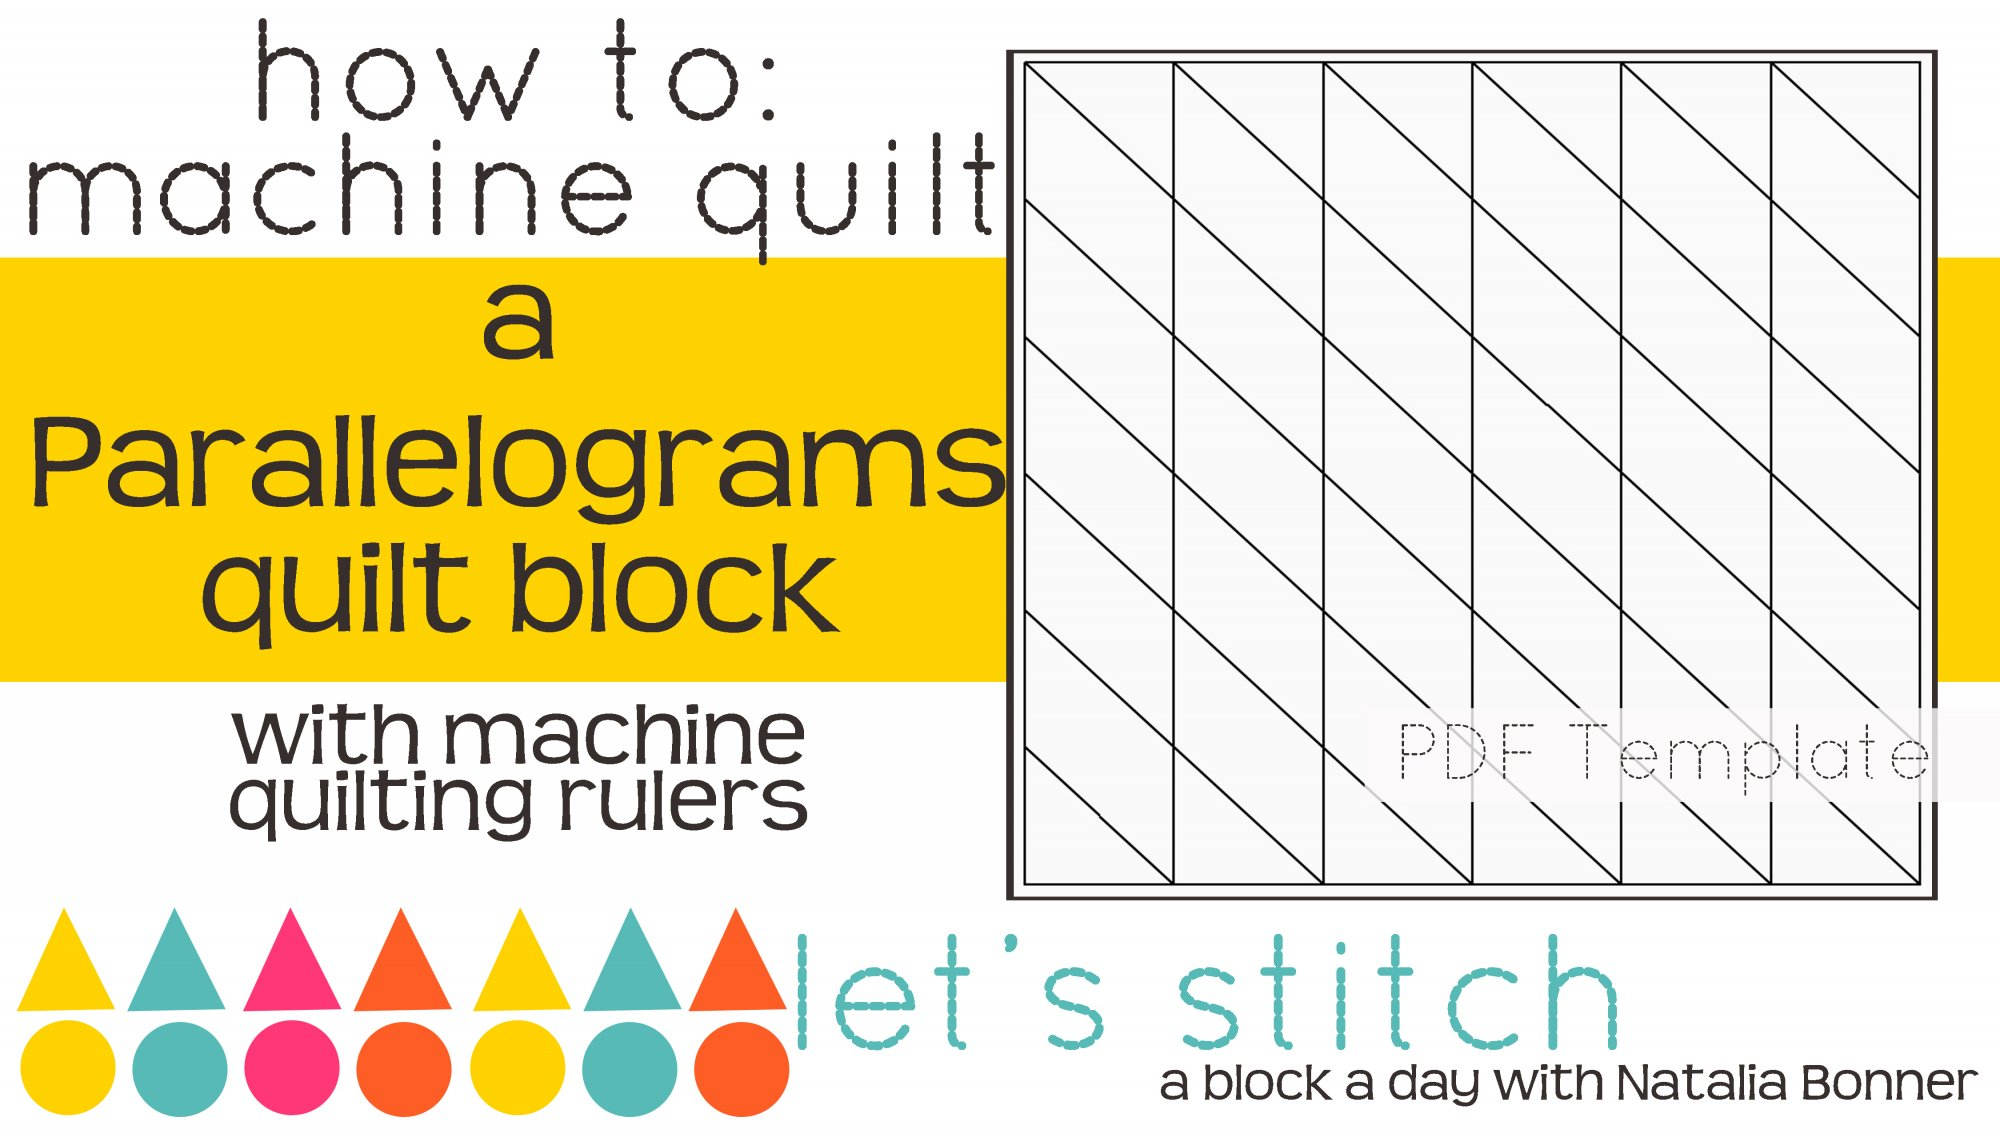 Let's Stitch - A Block a Day With Natalia Bonner - PDF - Parallelograms